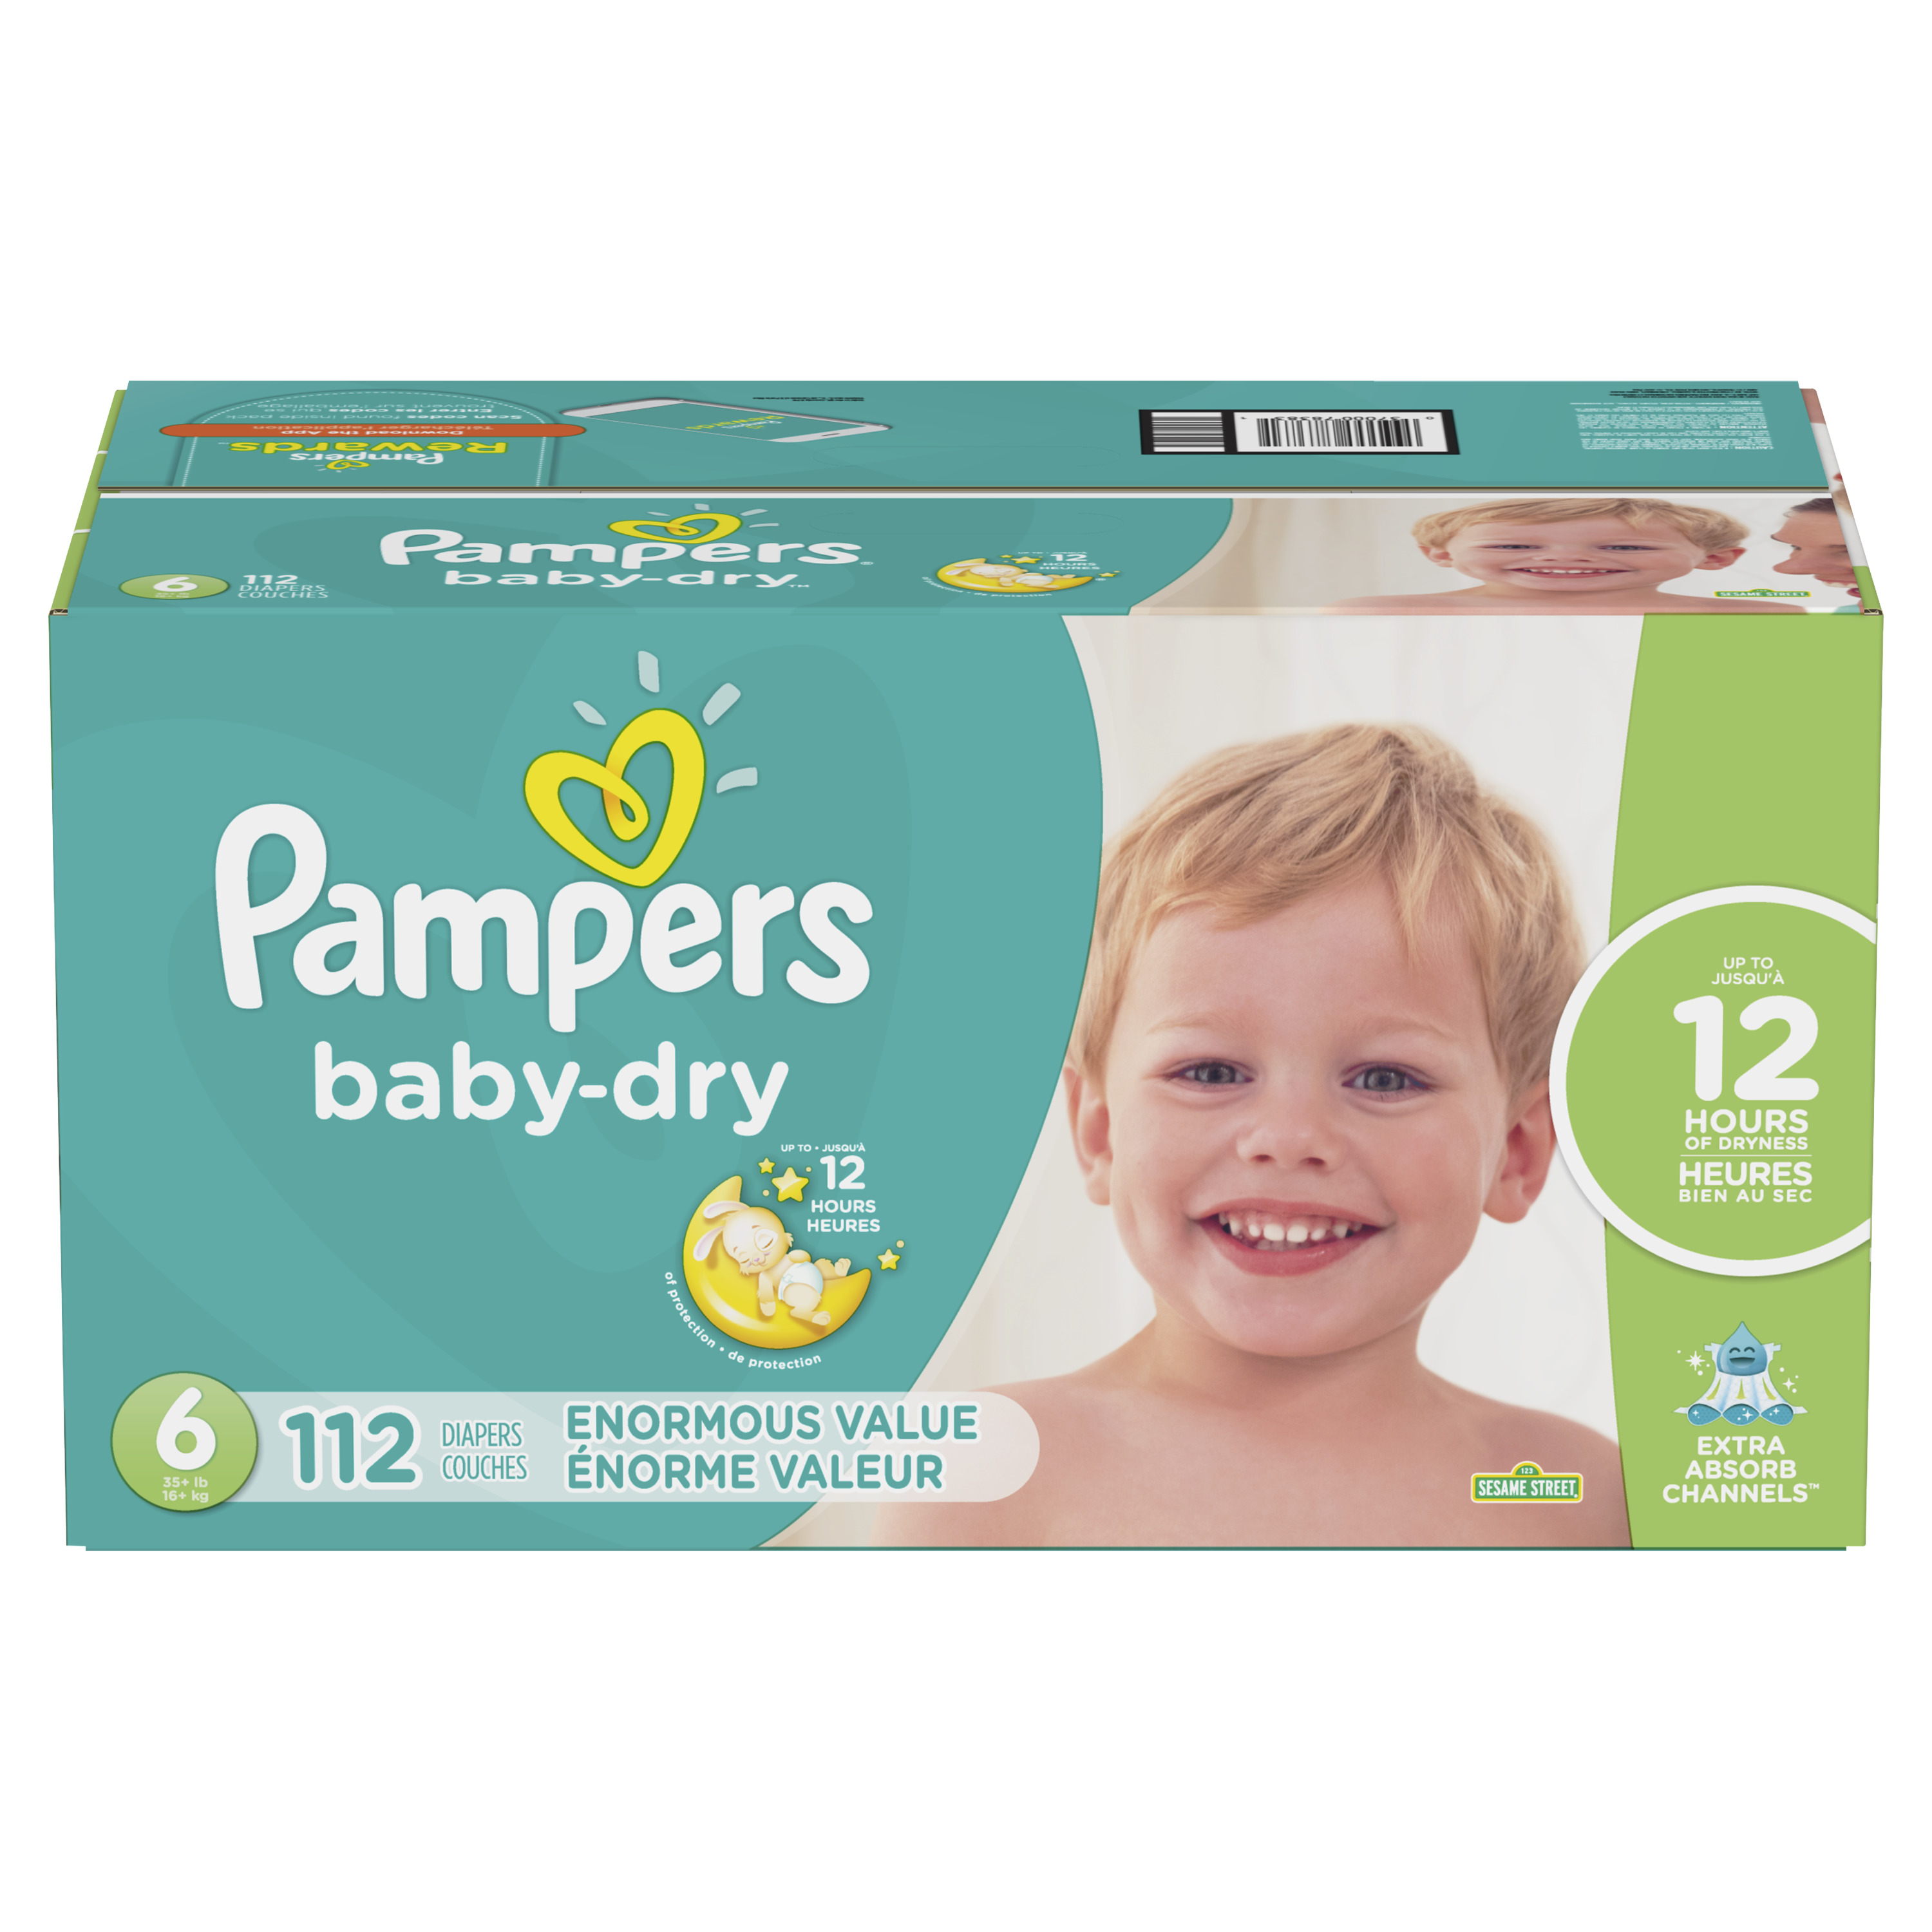 12164d75439 Pampers Baby Dry Diapers Size 6 112 Count - Walmart.com